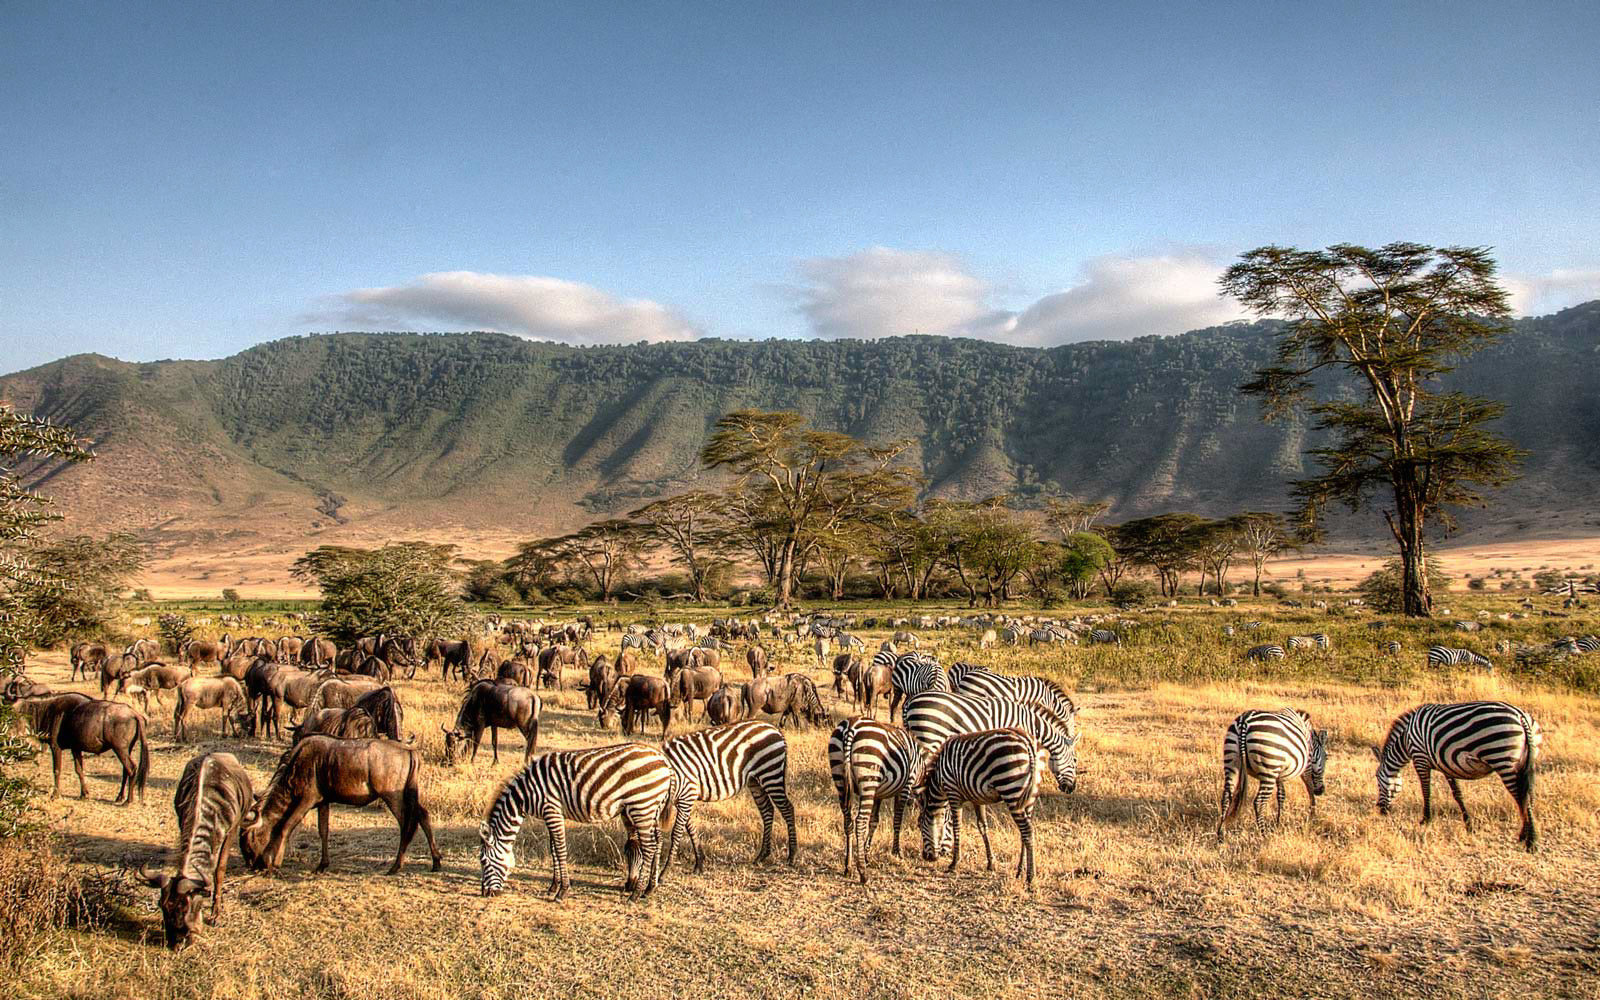 Animals grazing in the basin of the Ngorongora Crater in Tanzania